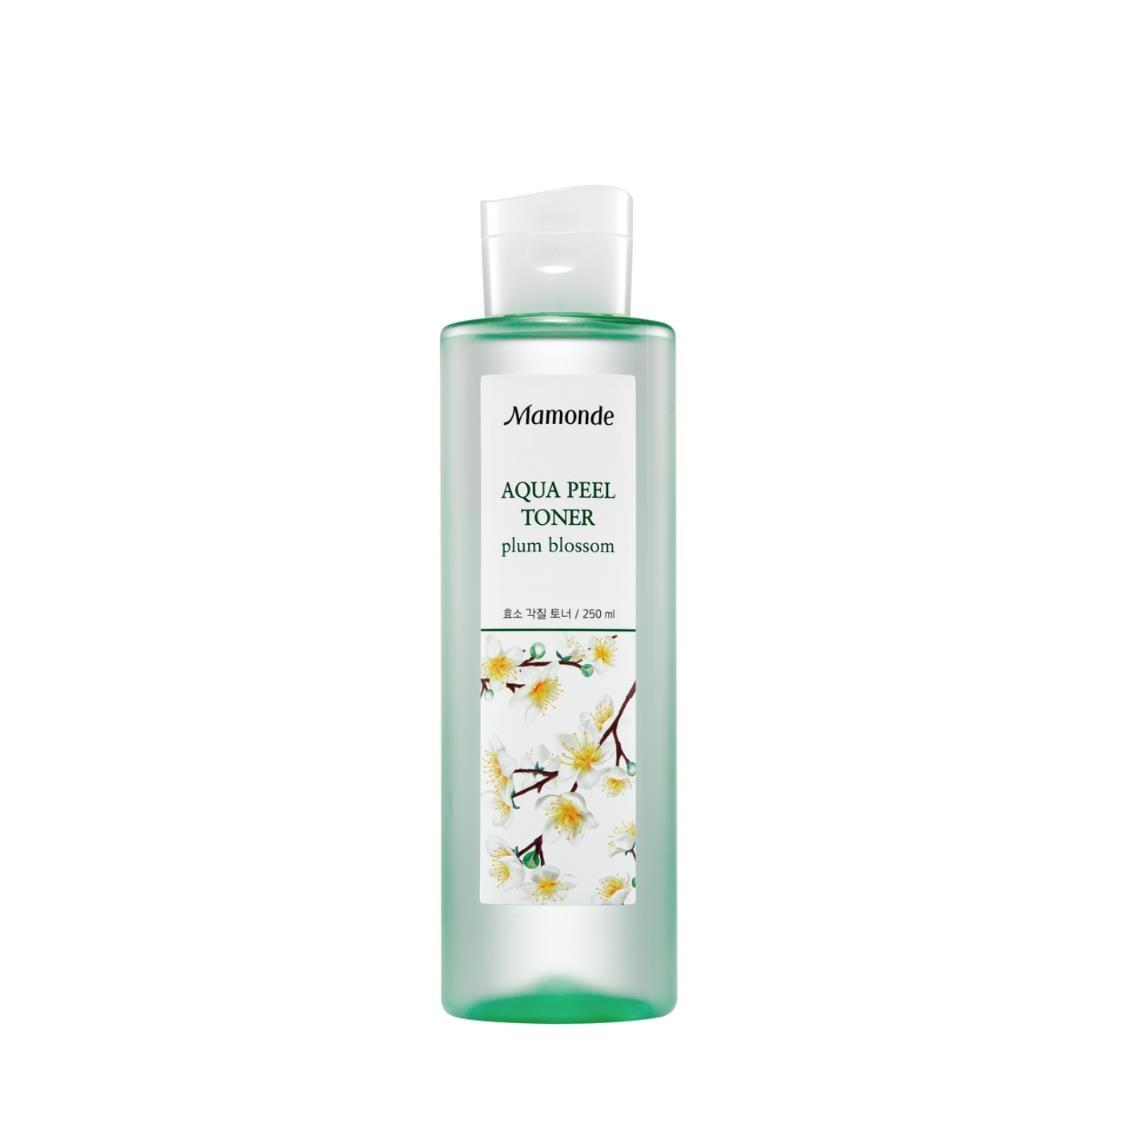 Aqua Peel Toner 250ml